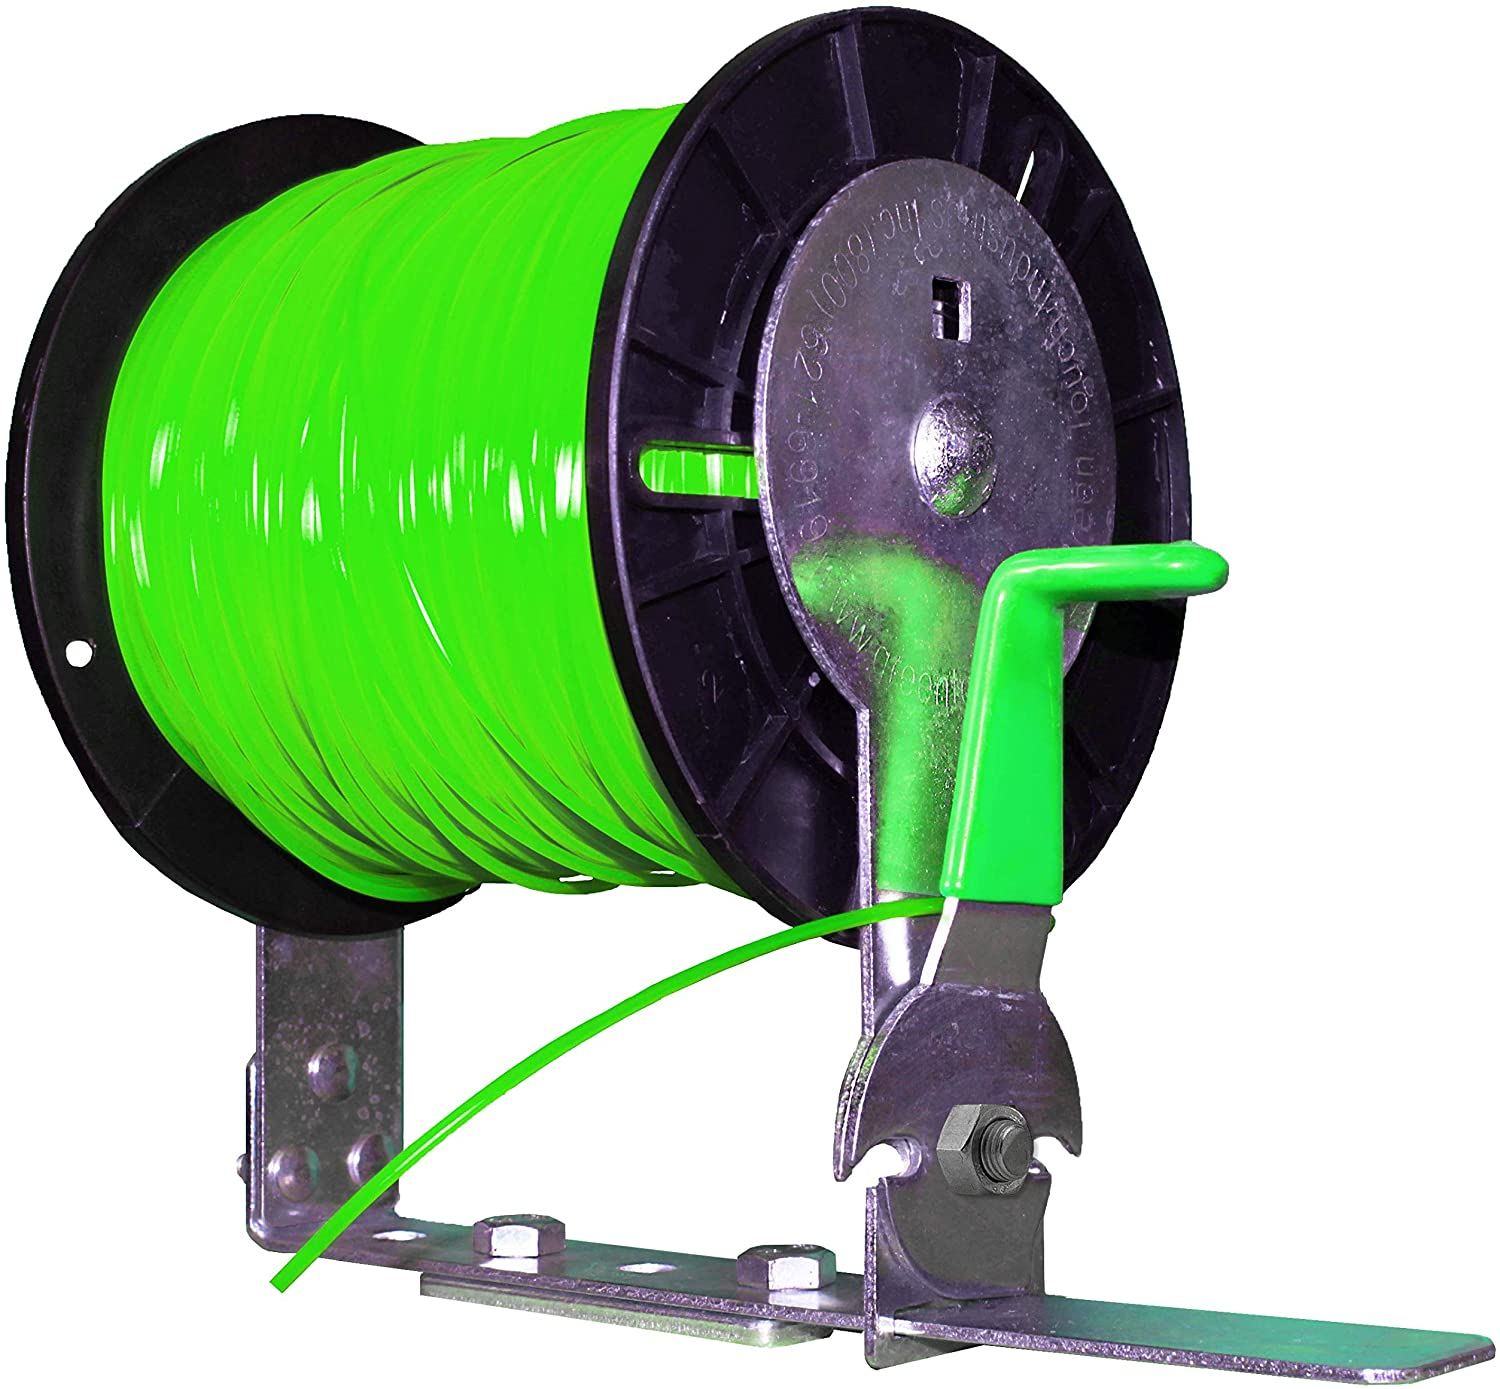 Green Touch Industries Line Spool Rack w/Built On Cutter (Item#: XD105)